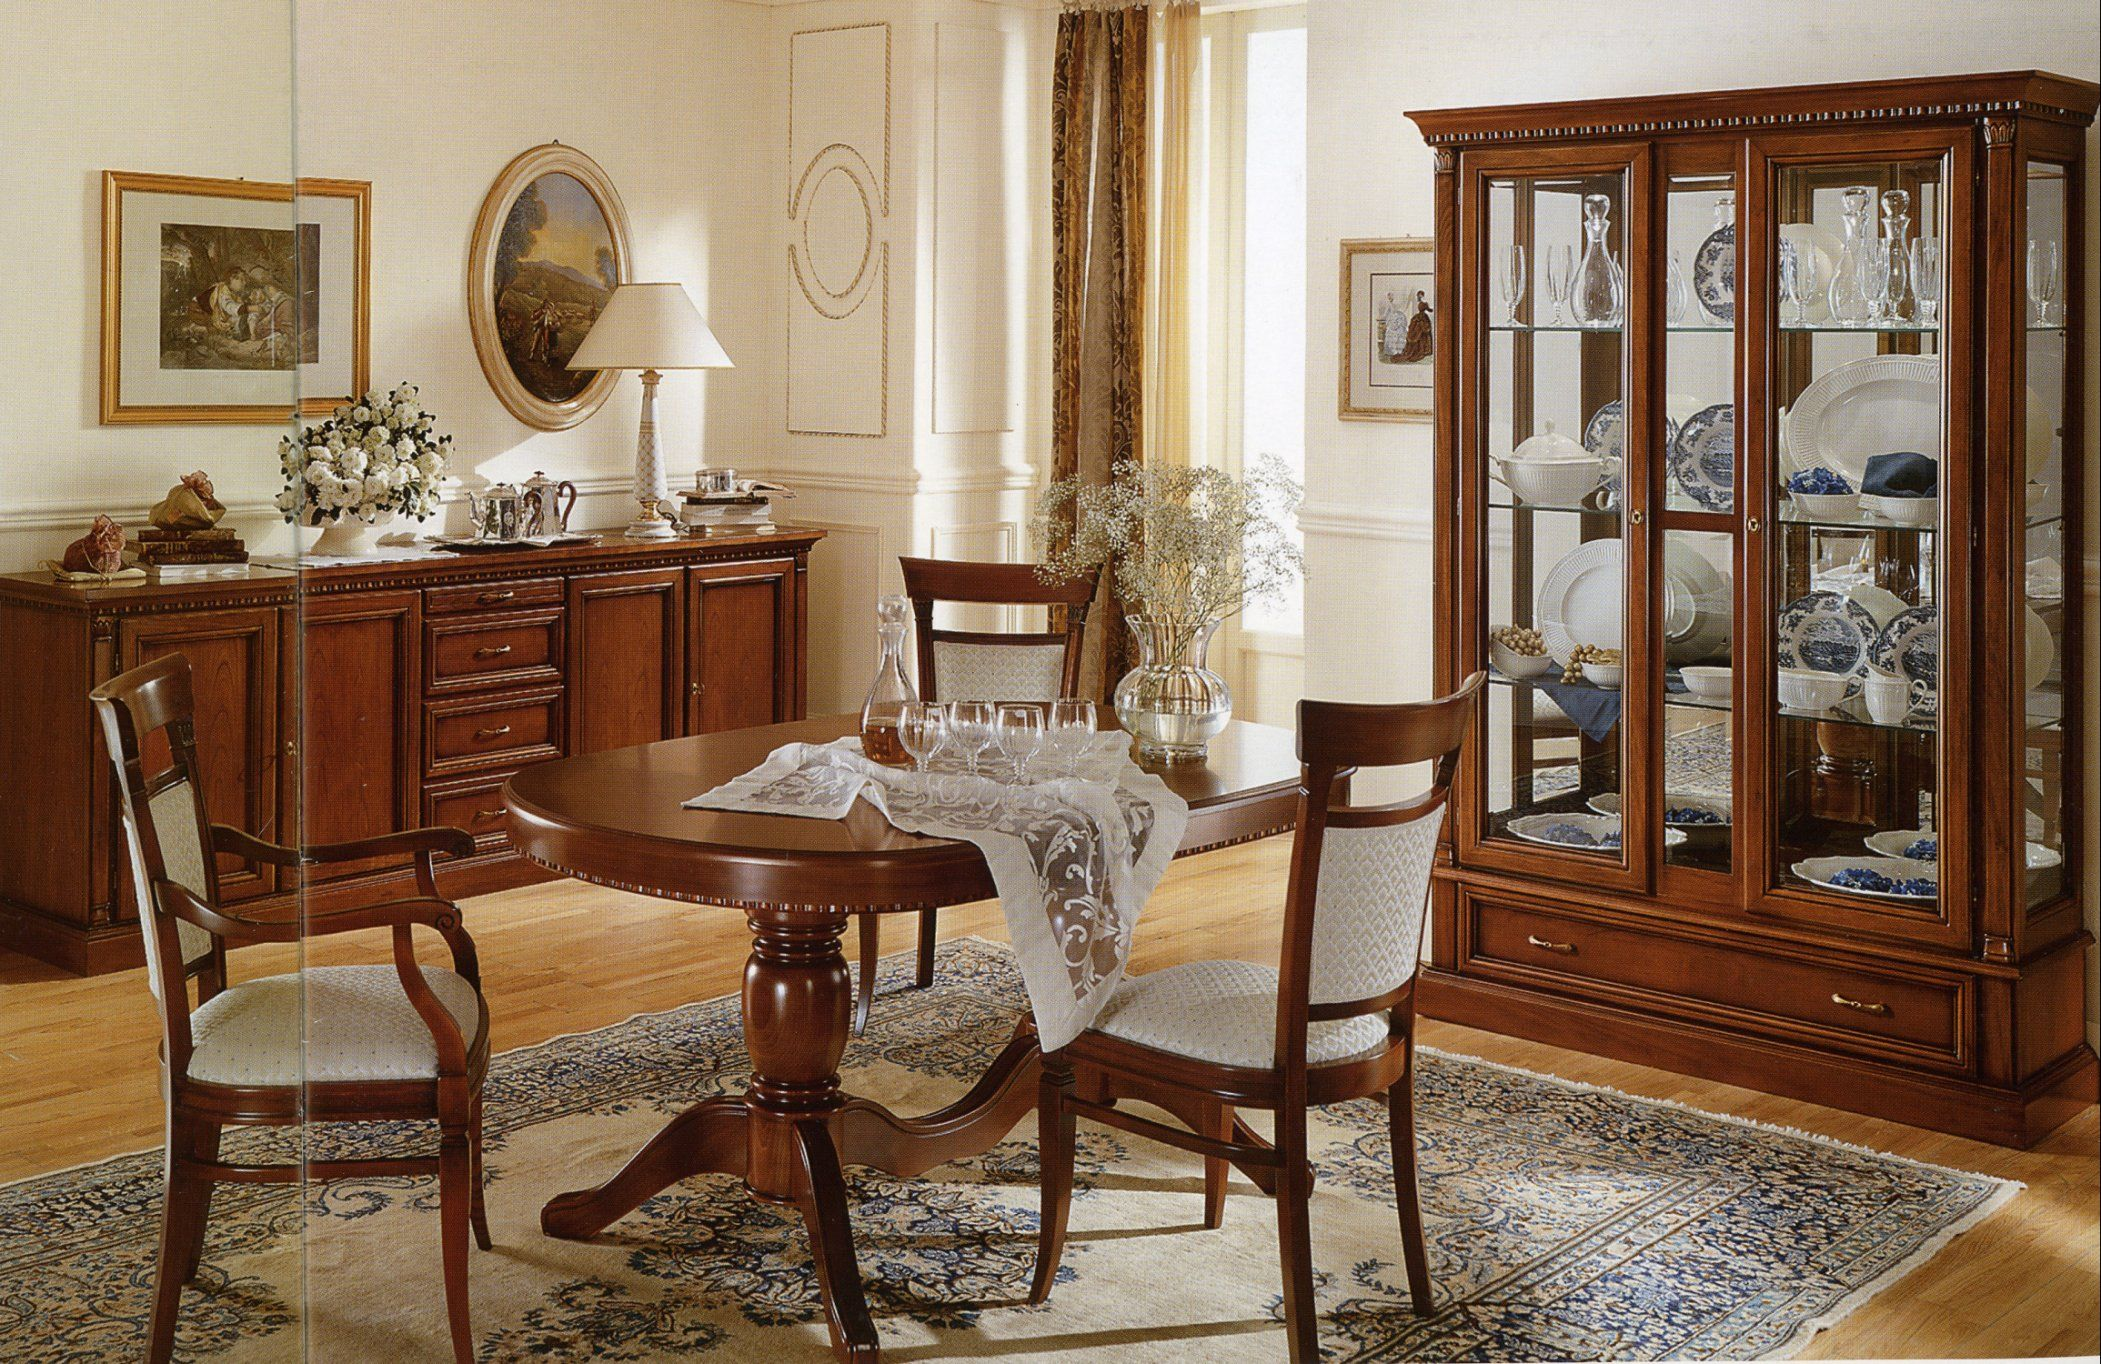 Traditional wooden dining room furniture sets with buffet cabinets